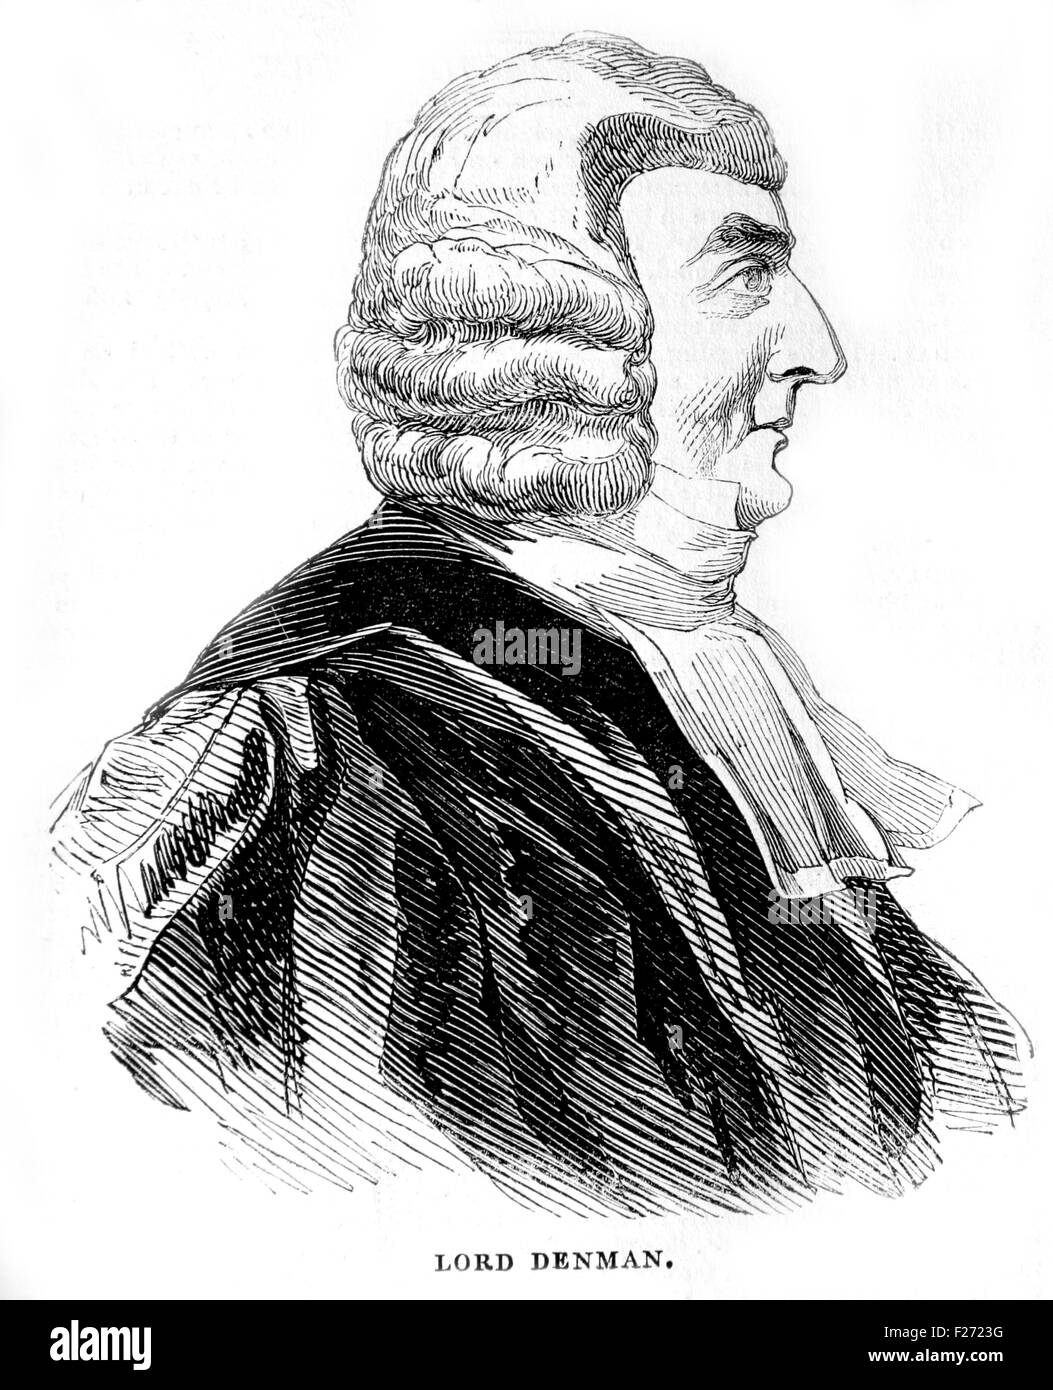 Lord Denman, Lord Chief Justice, 1832 to 1850. Illustrated London News July 1844; Black and White Illustration; - Stock Image